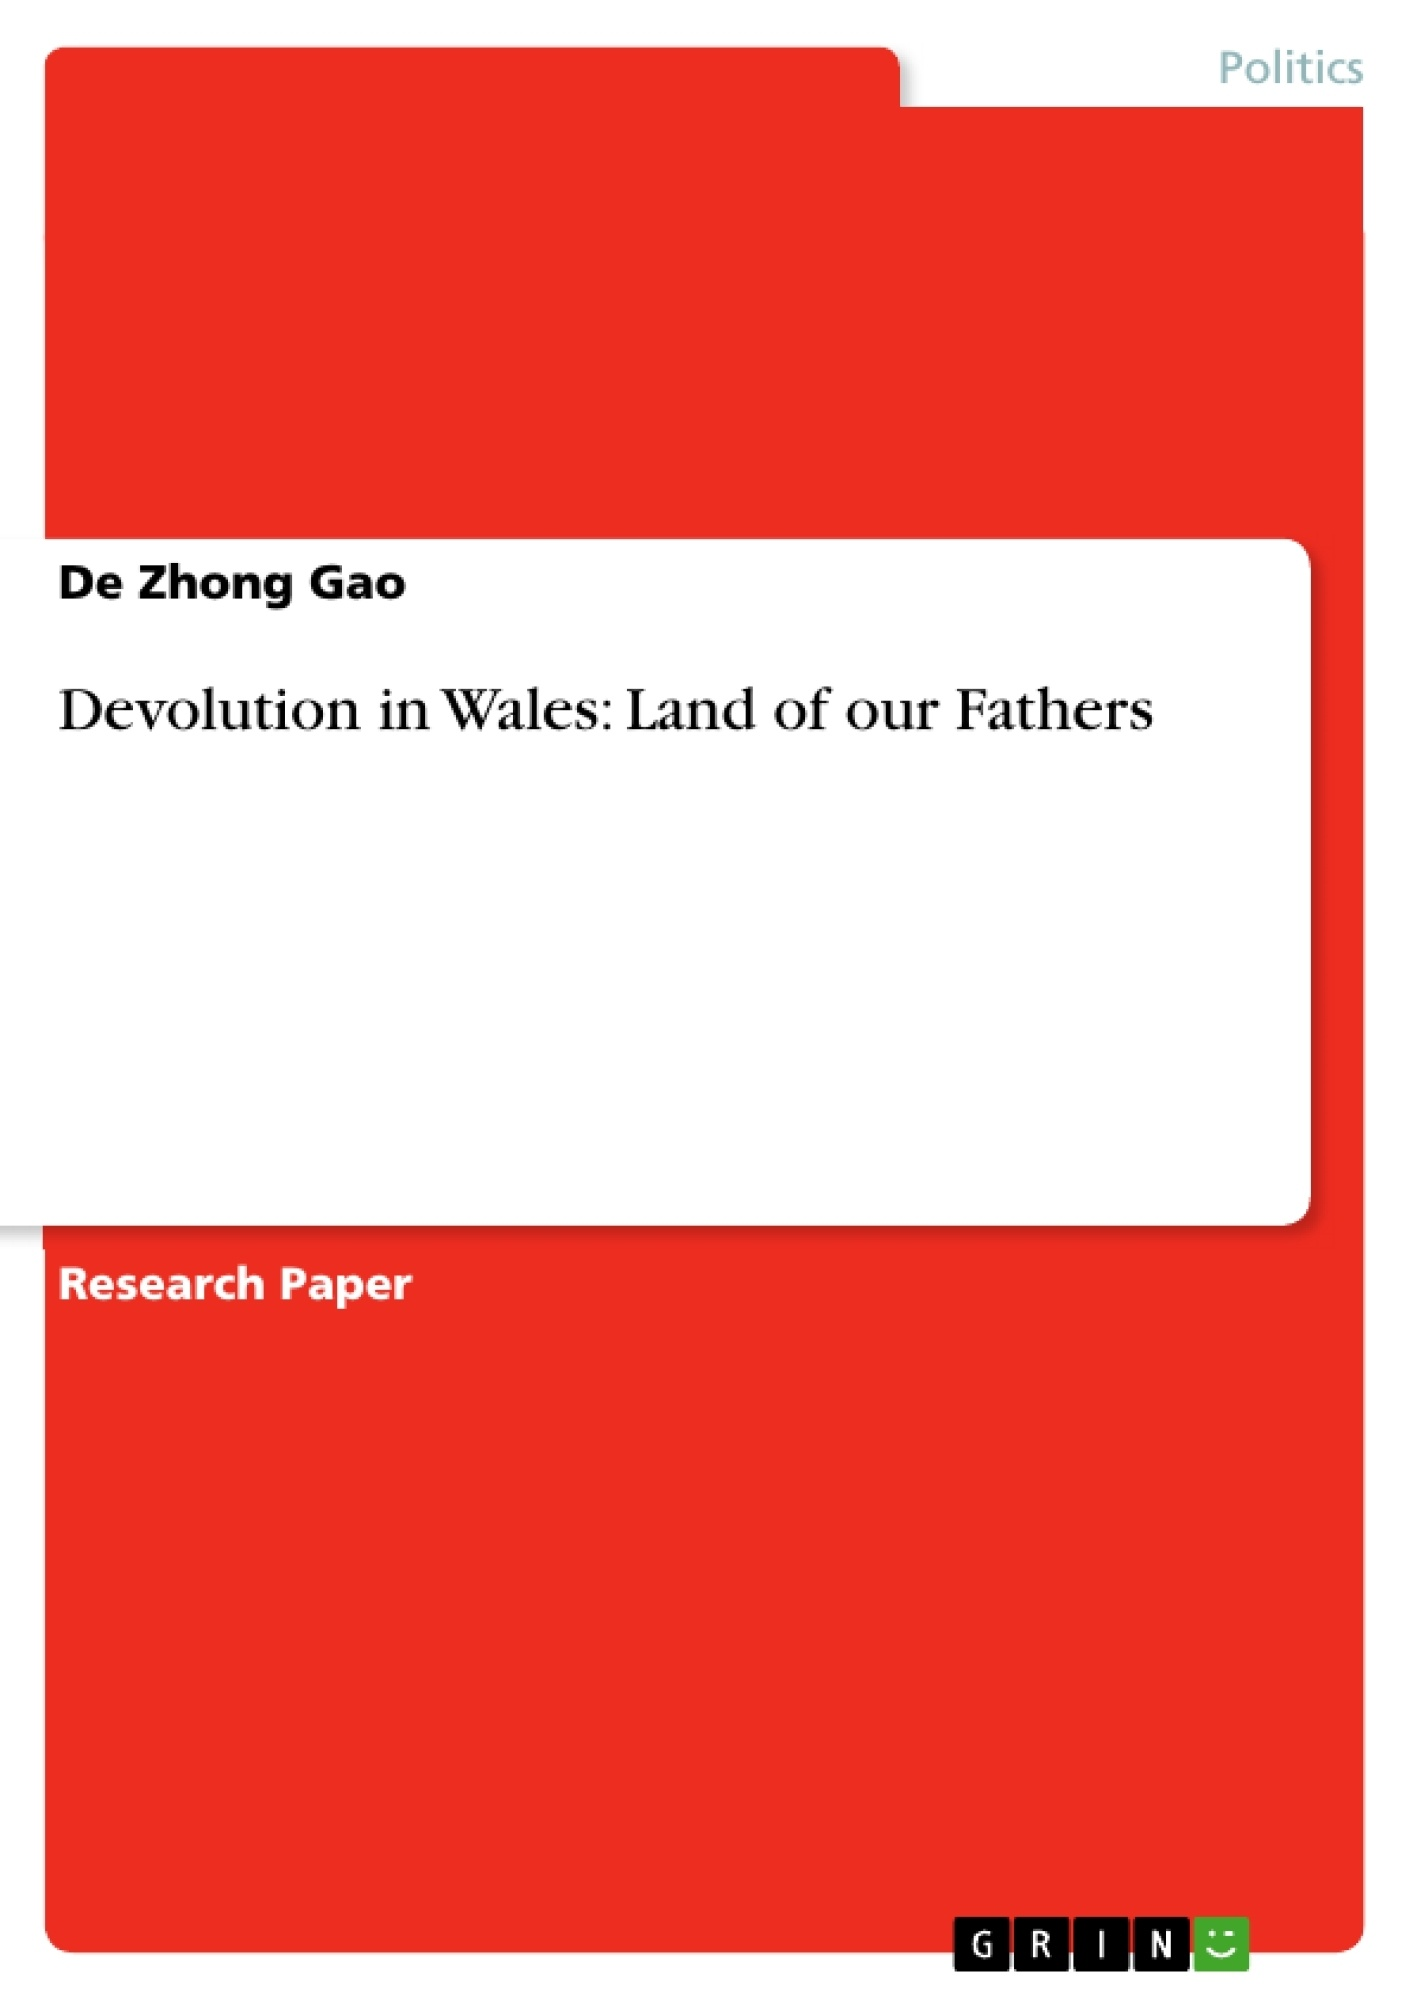 Title: Devolution in Wales: Land of our Fathers